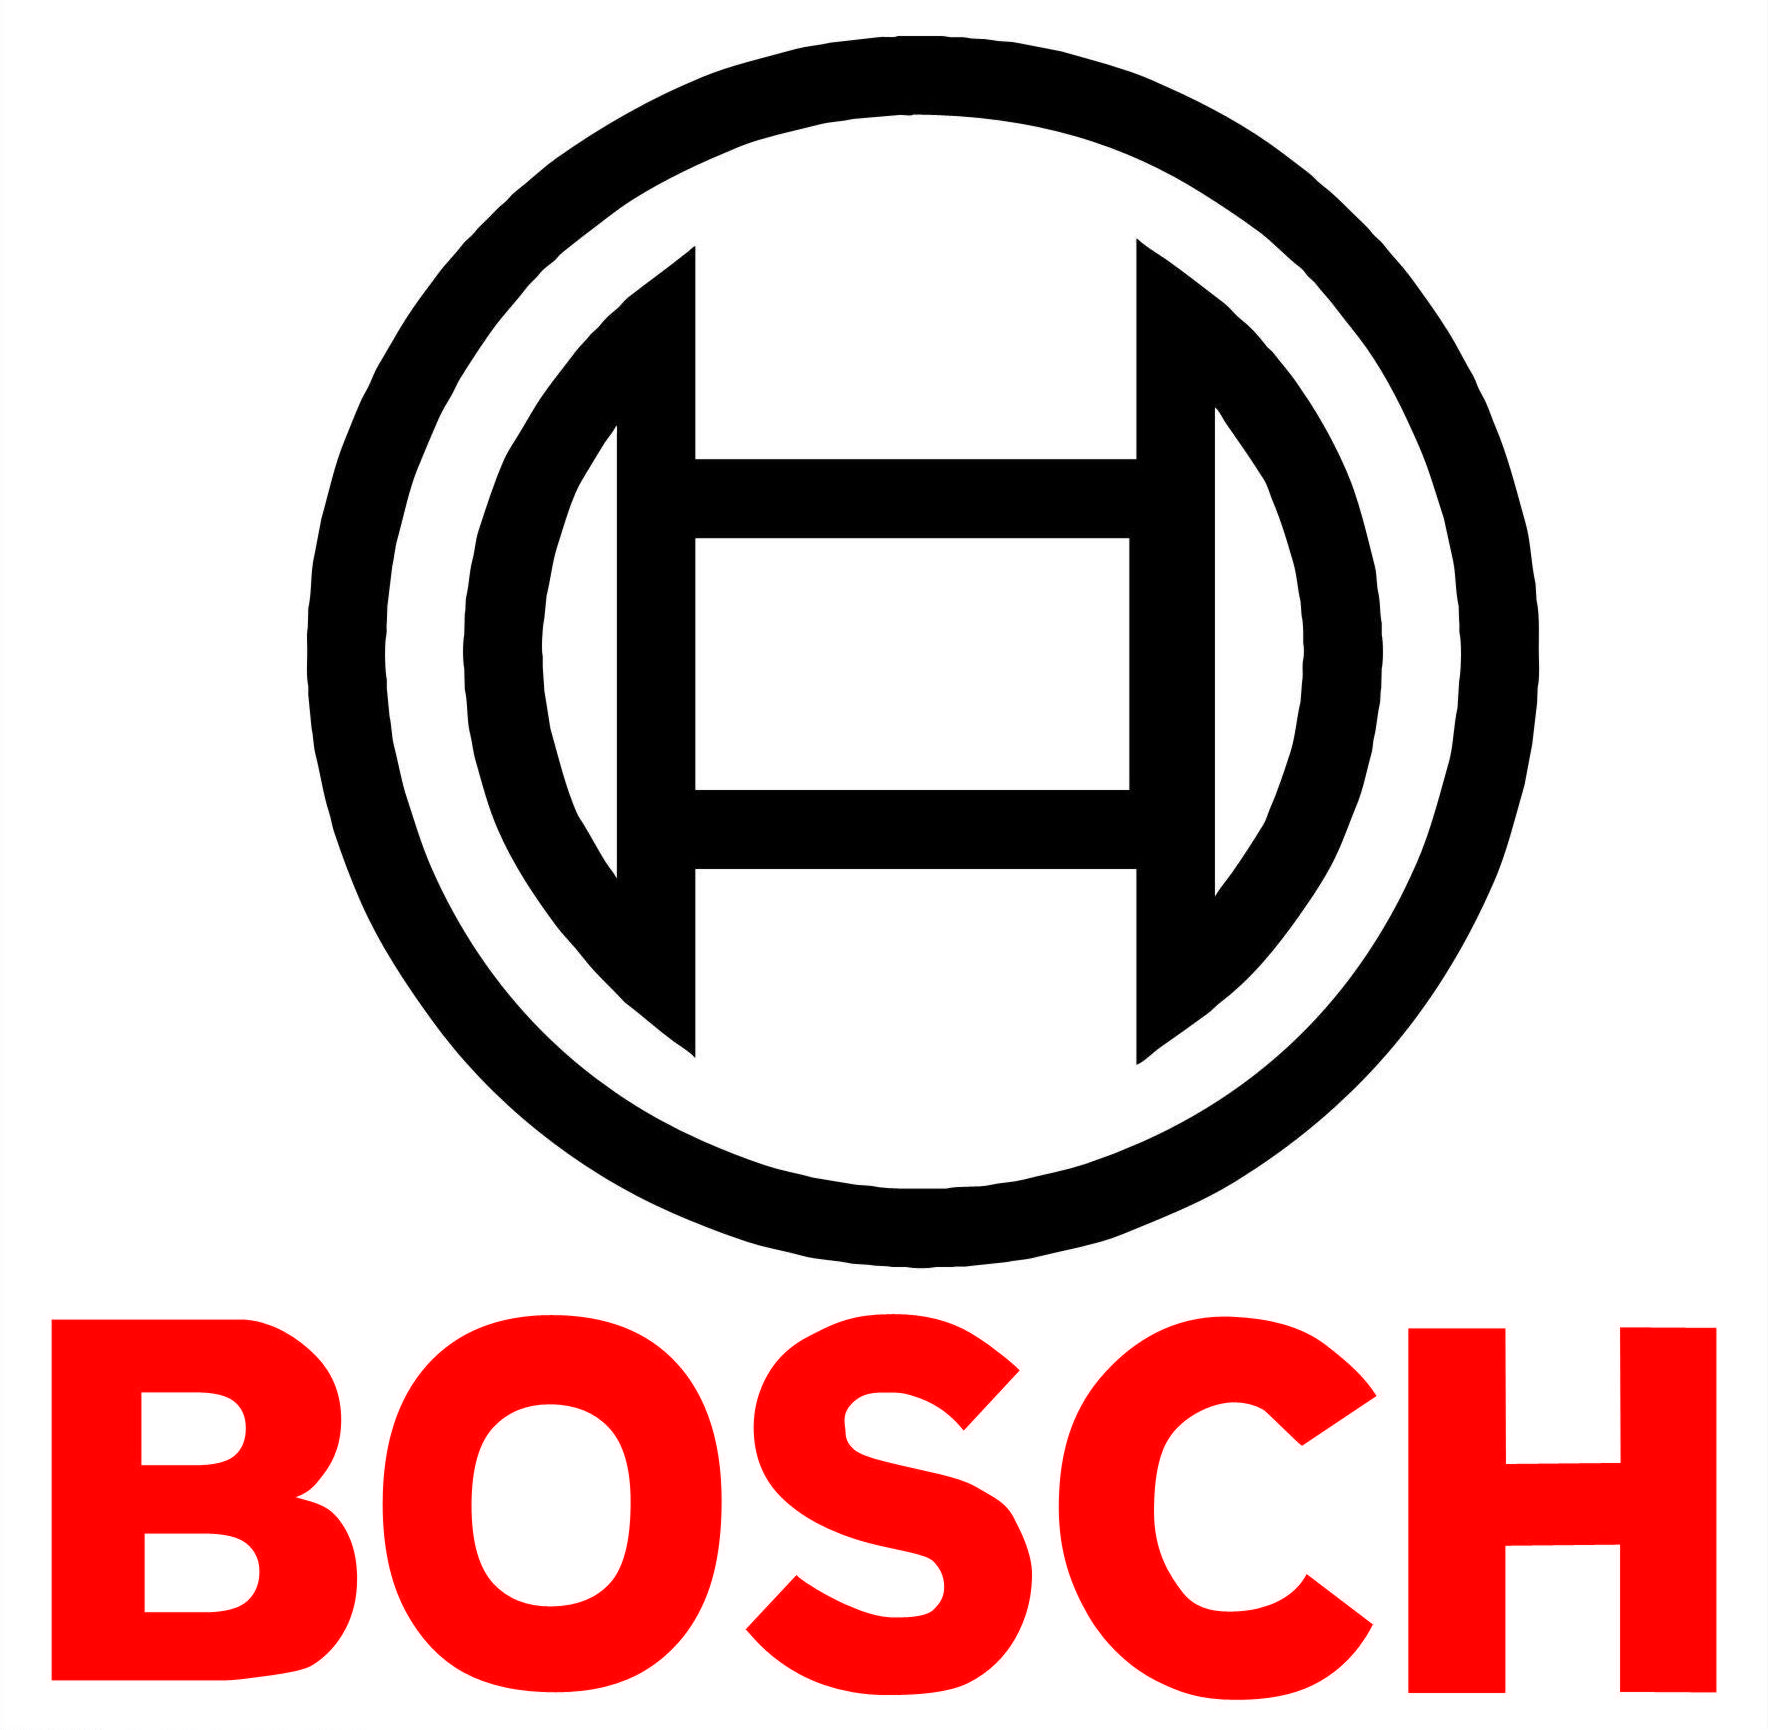 Bosch logo 3D Wallpaper